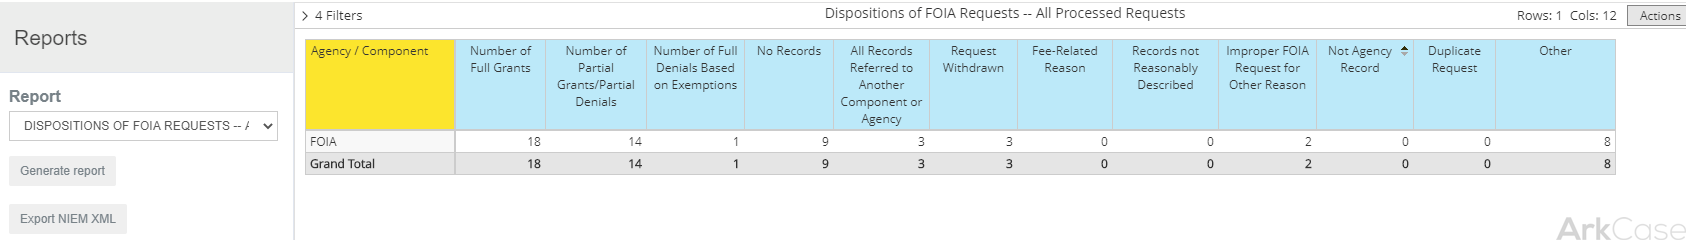 Dispositions of FOIA Requests